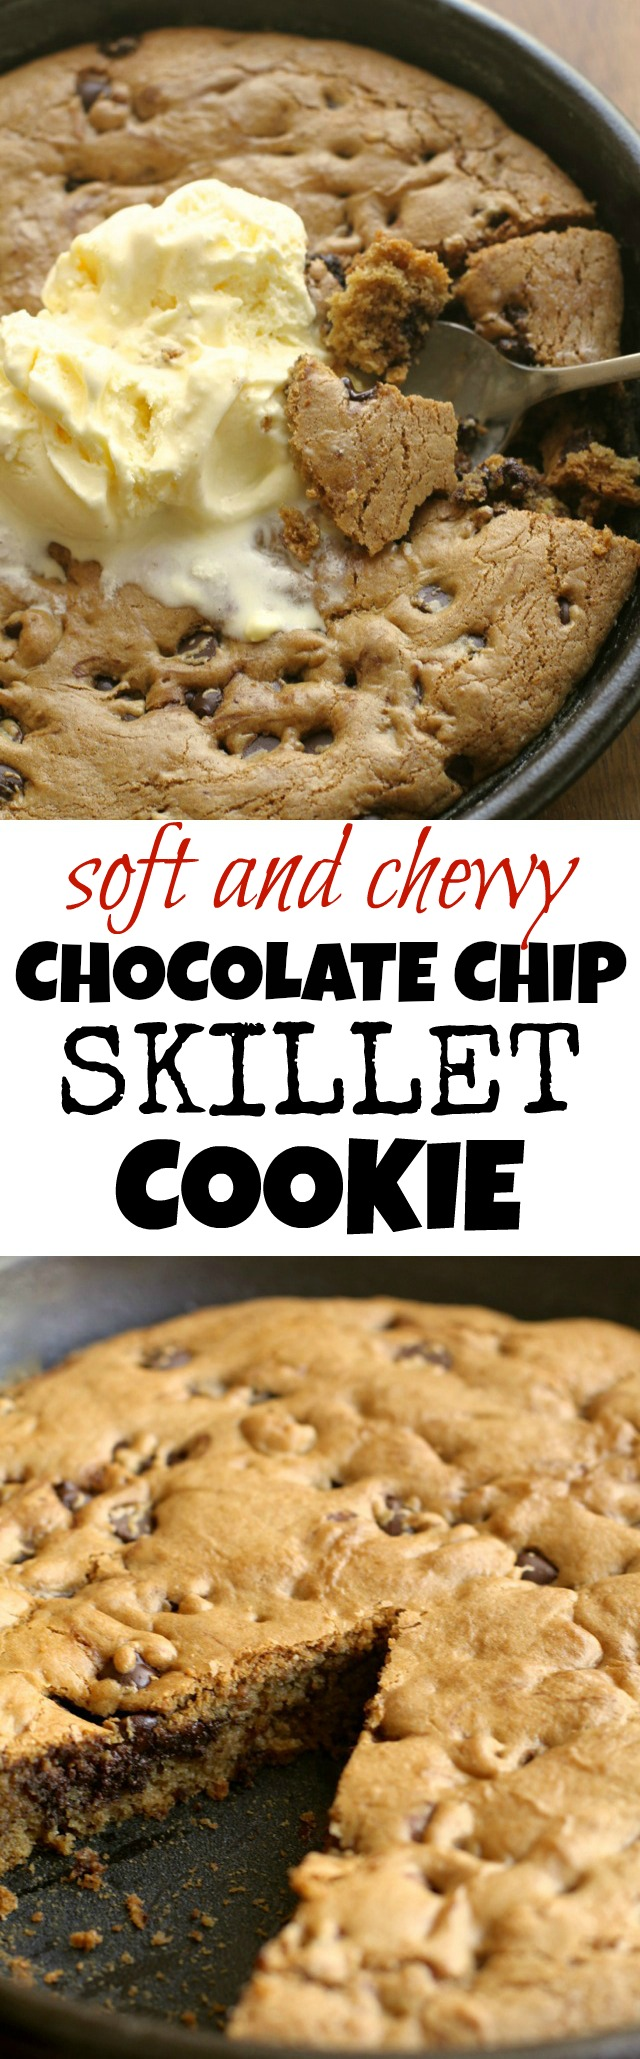 Soft and Chewy Chocolate Chip Skillet Cookie || runningwithspoons.com